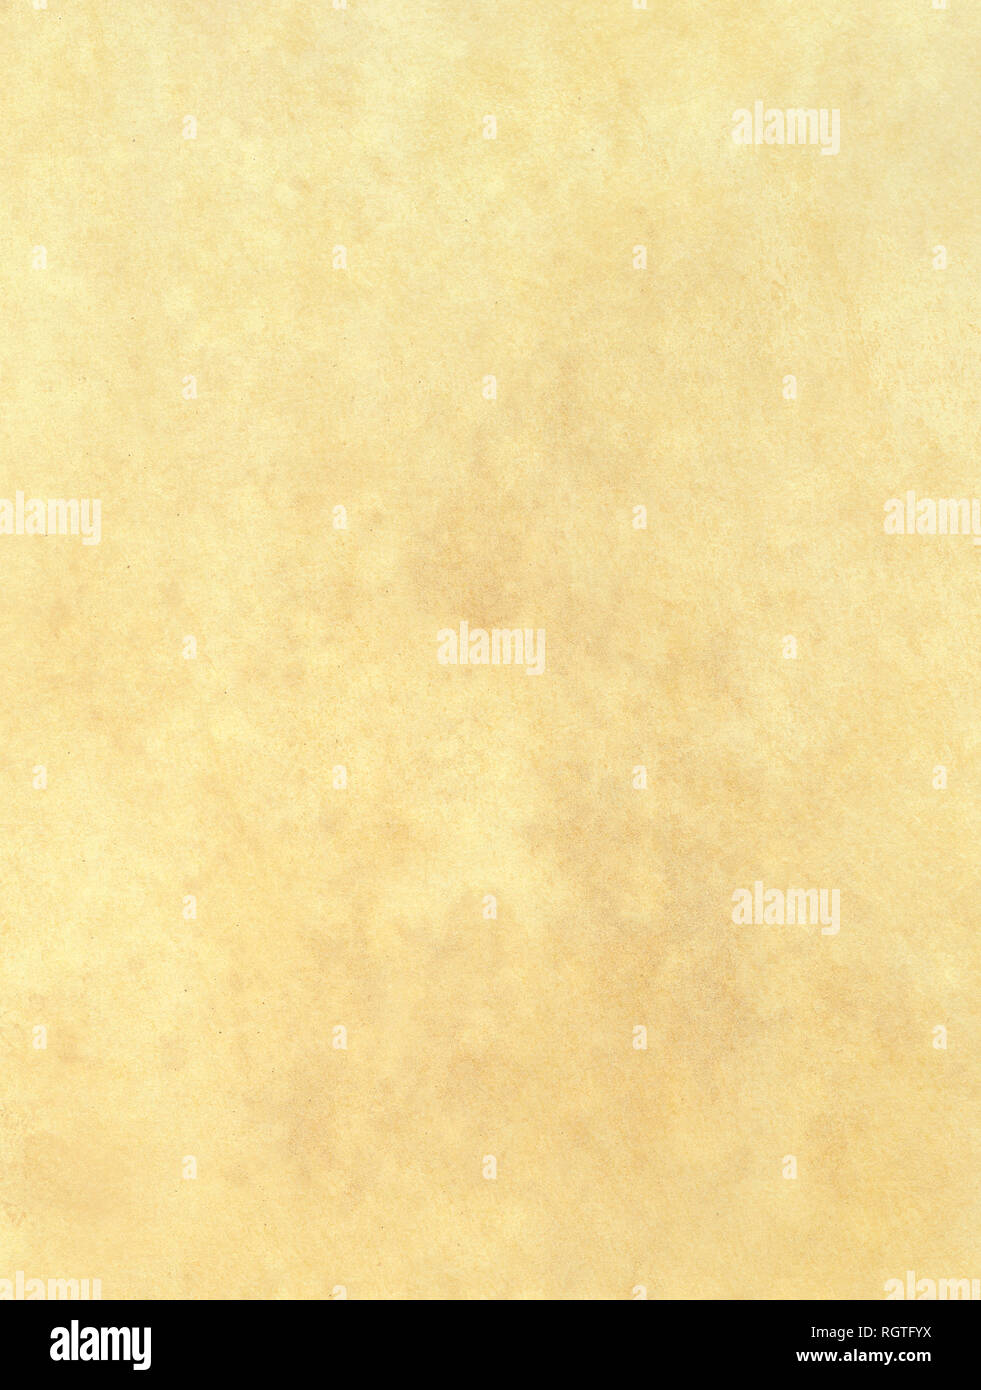 Old paper textured background. Blank piece of ancient parchment. - Stock Image